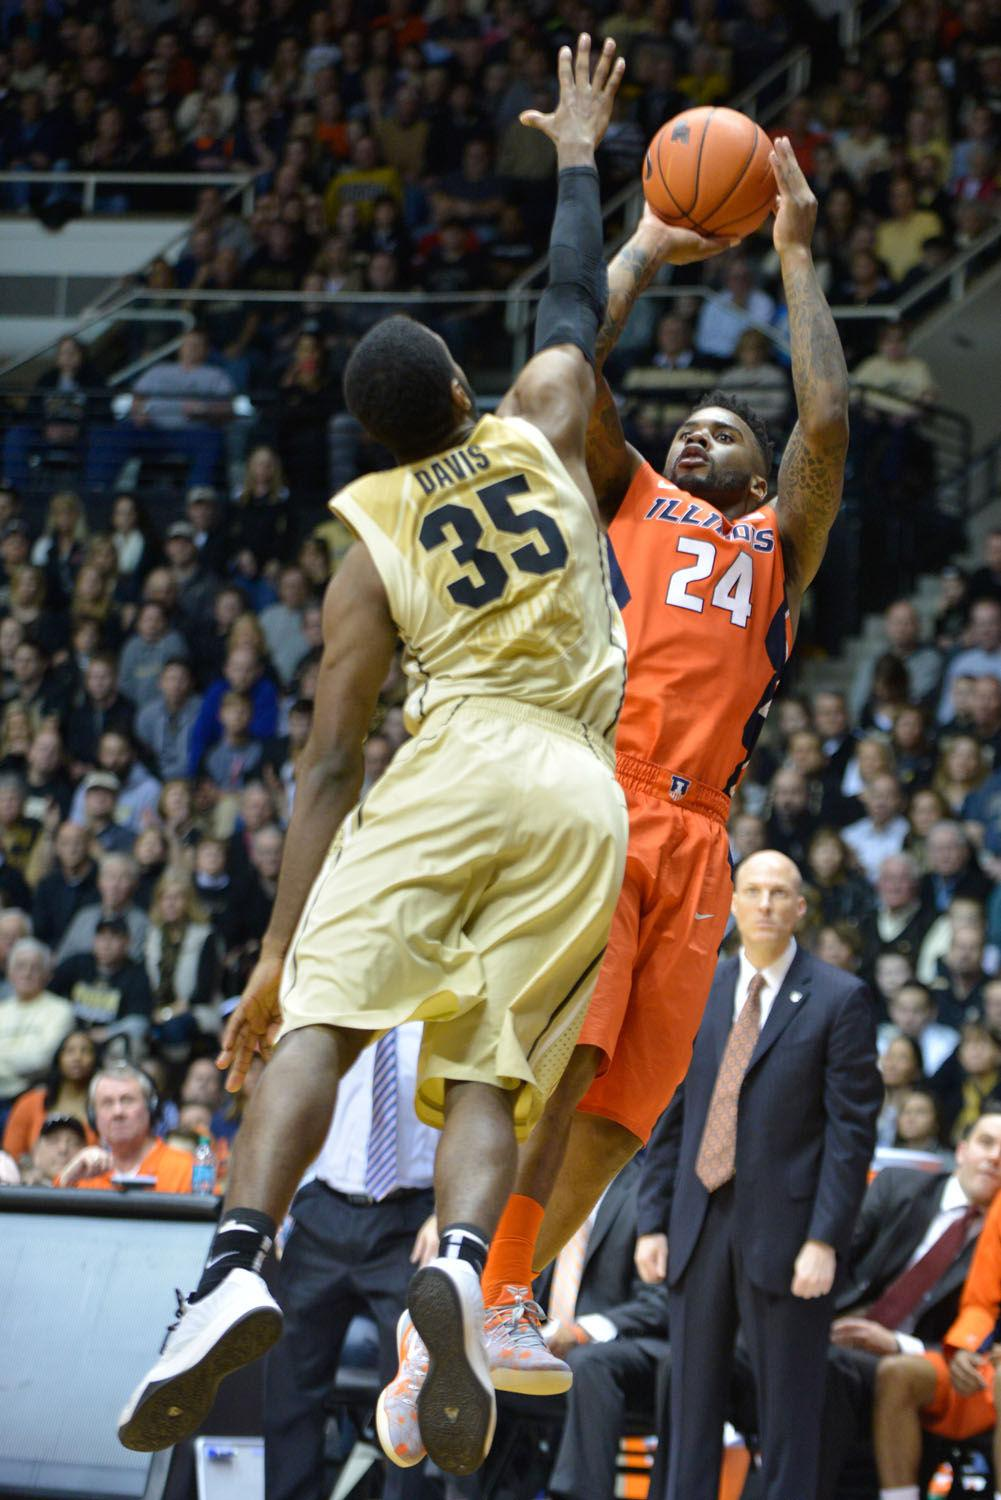 Illinois' Rayvonte Rice (24) rises for a jump shot during the game against Purdue at Mackey Arena in West Lafayette, Indiana, on Saturday. The Illini lost 63-58.